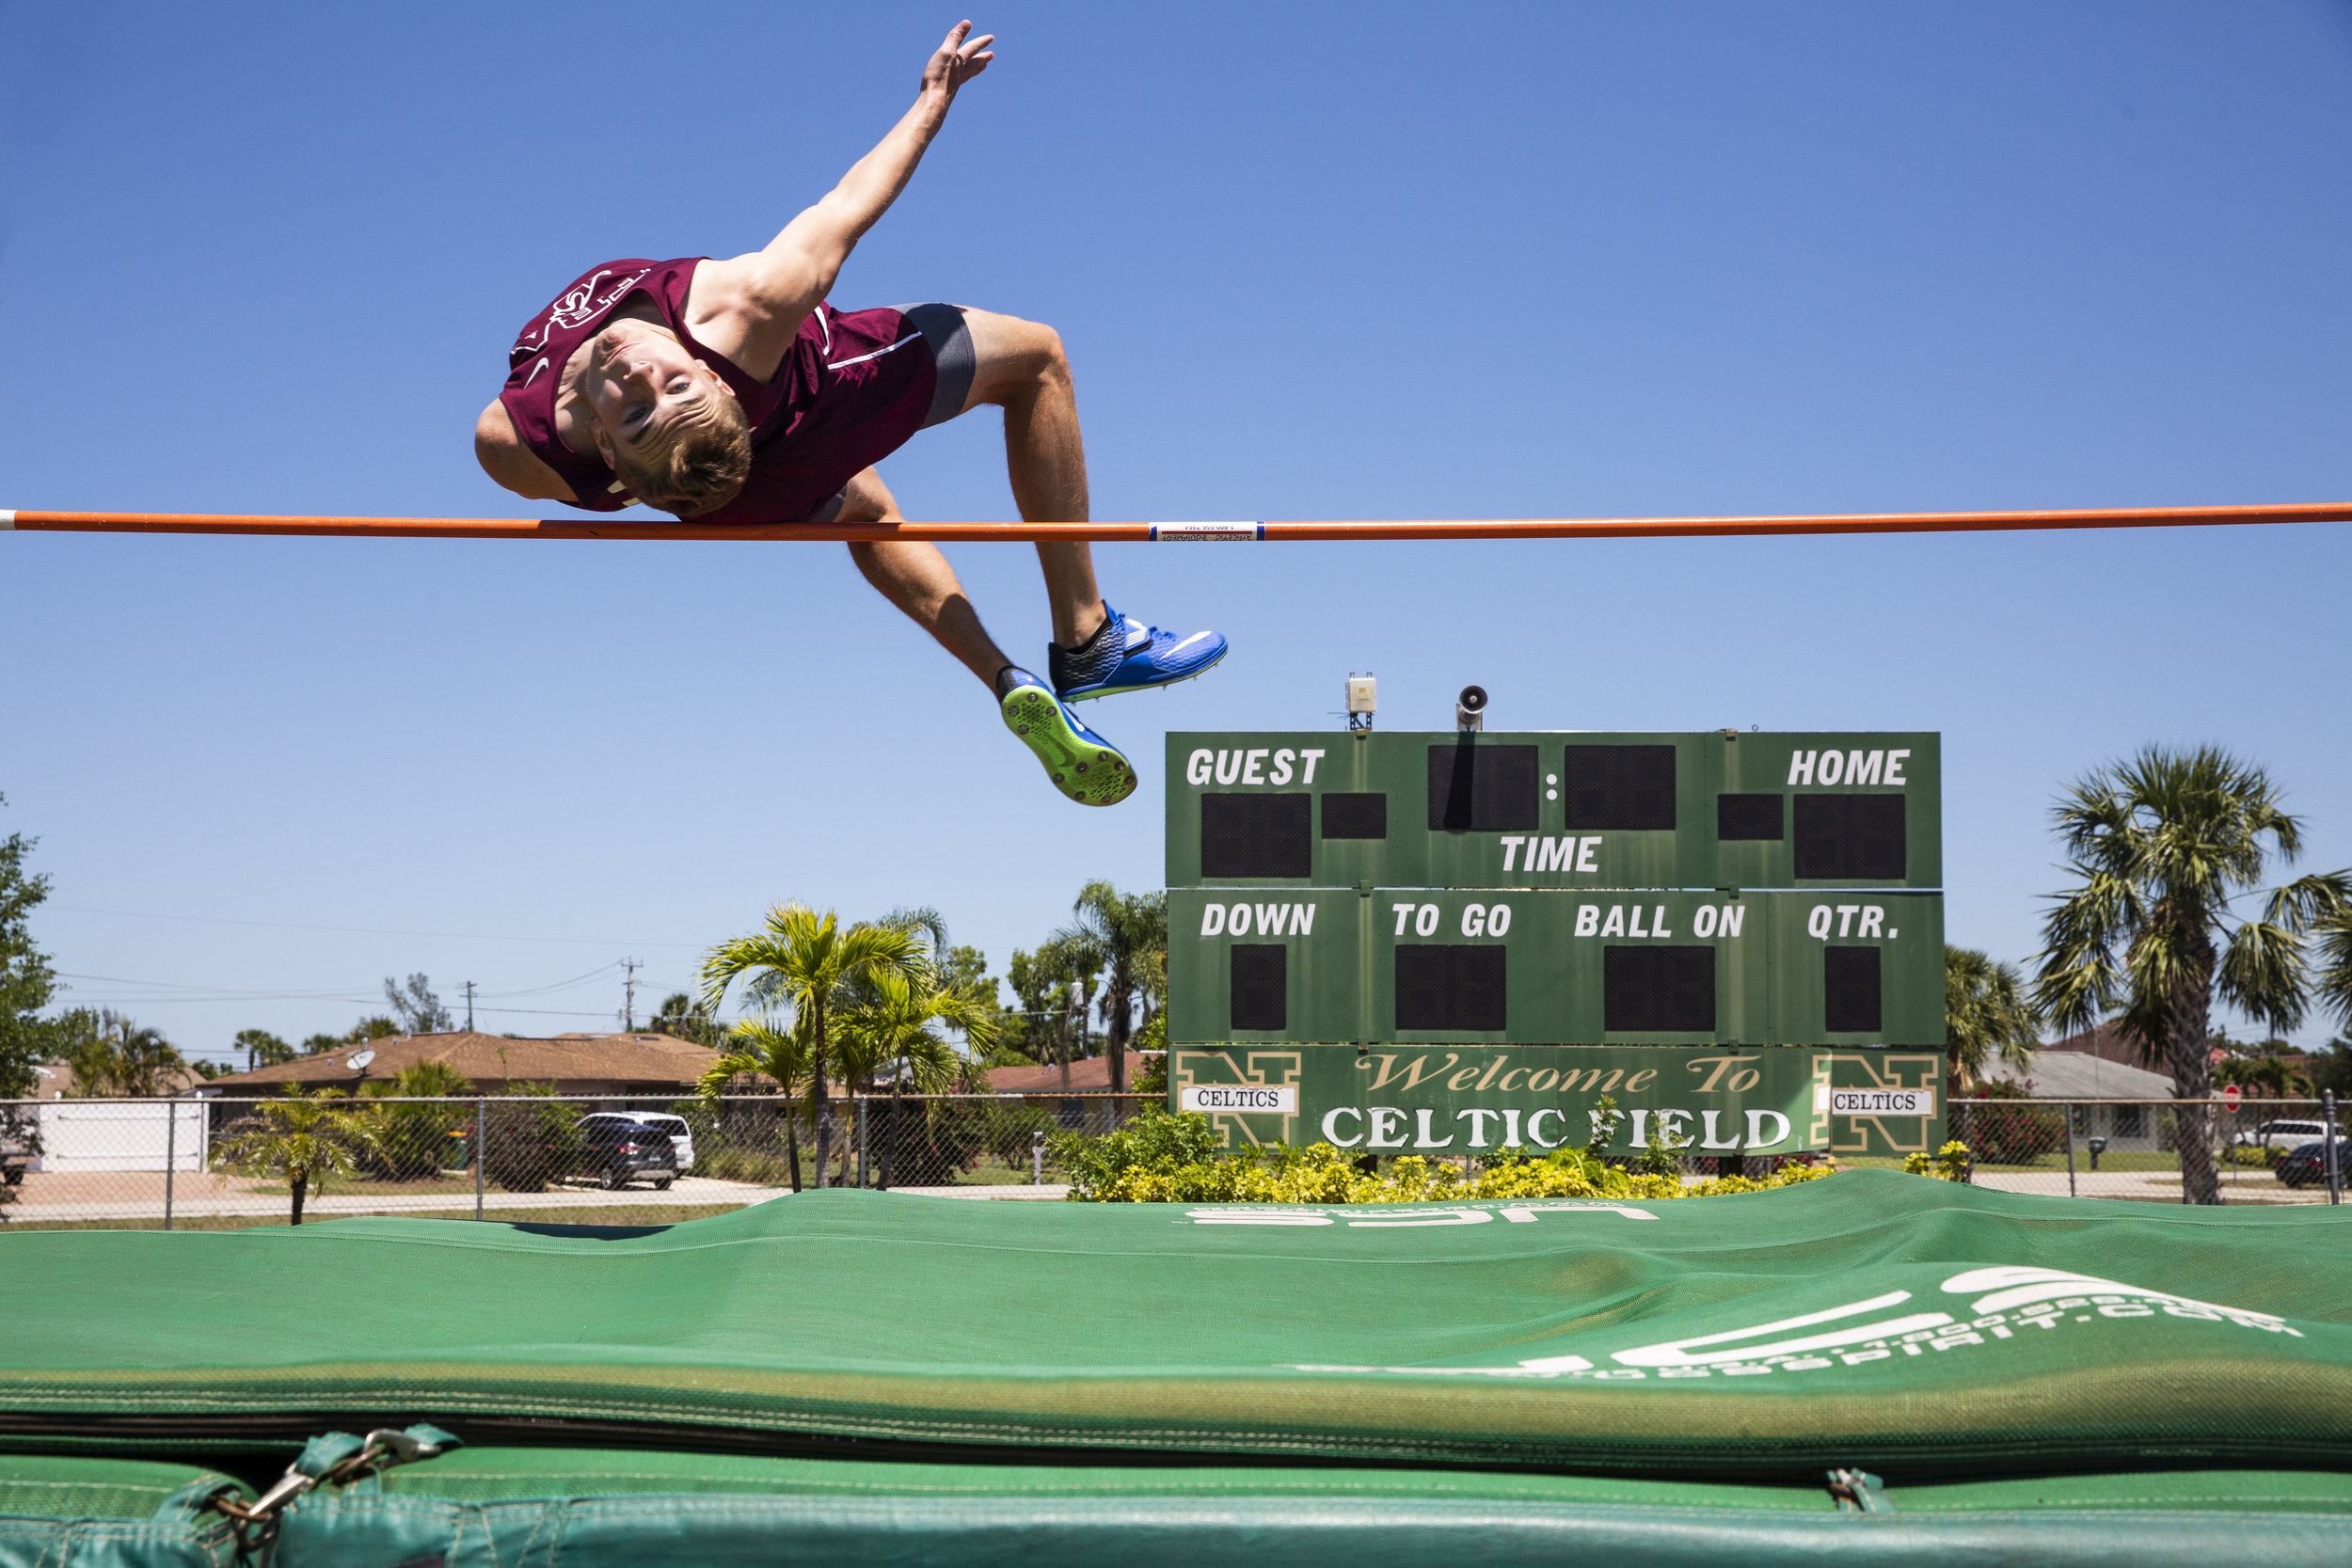 Nick Tompkins, from First Baptist Academy, competes in the high jump during the Class 1A District 8 track and field meet at St. John Neumann Catholic High School on Tuesday, April 17, 2018.